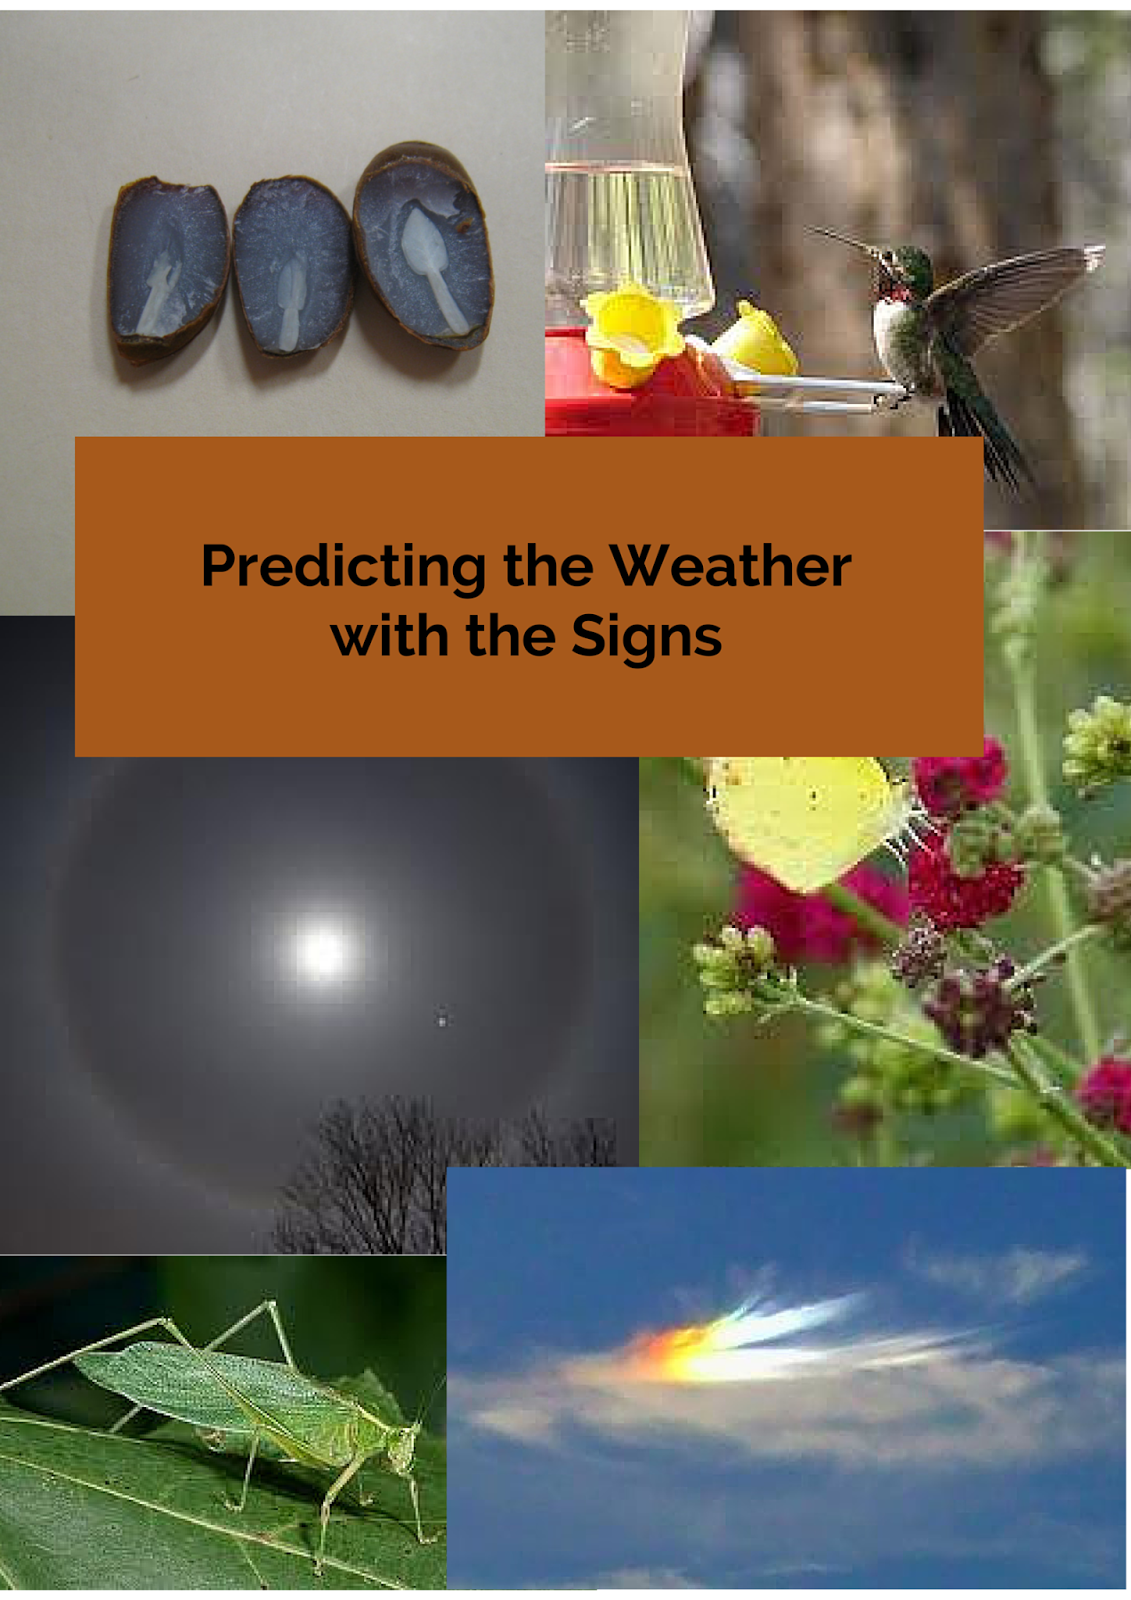 Some would call if folklore, I call it observation. Watching the signs will give you a heads up on what the weather will be like.